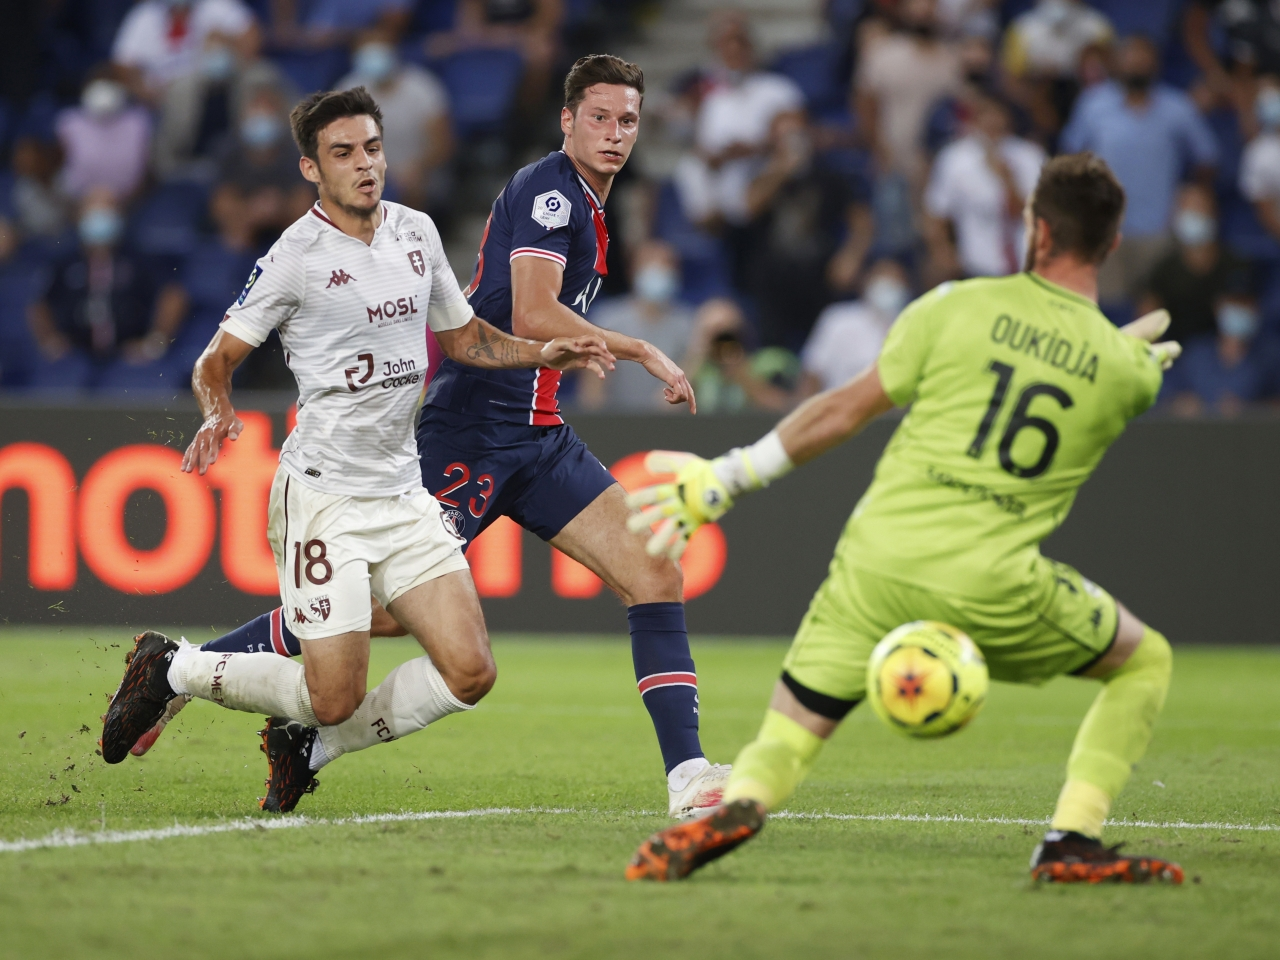 Draxler's late goal secures first league win for PSG, Neymar banned for two games